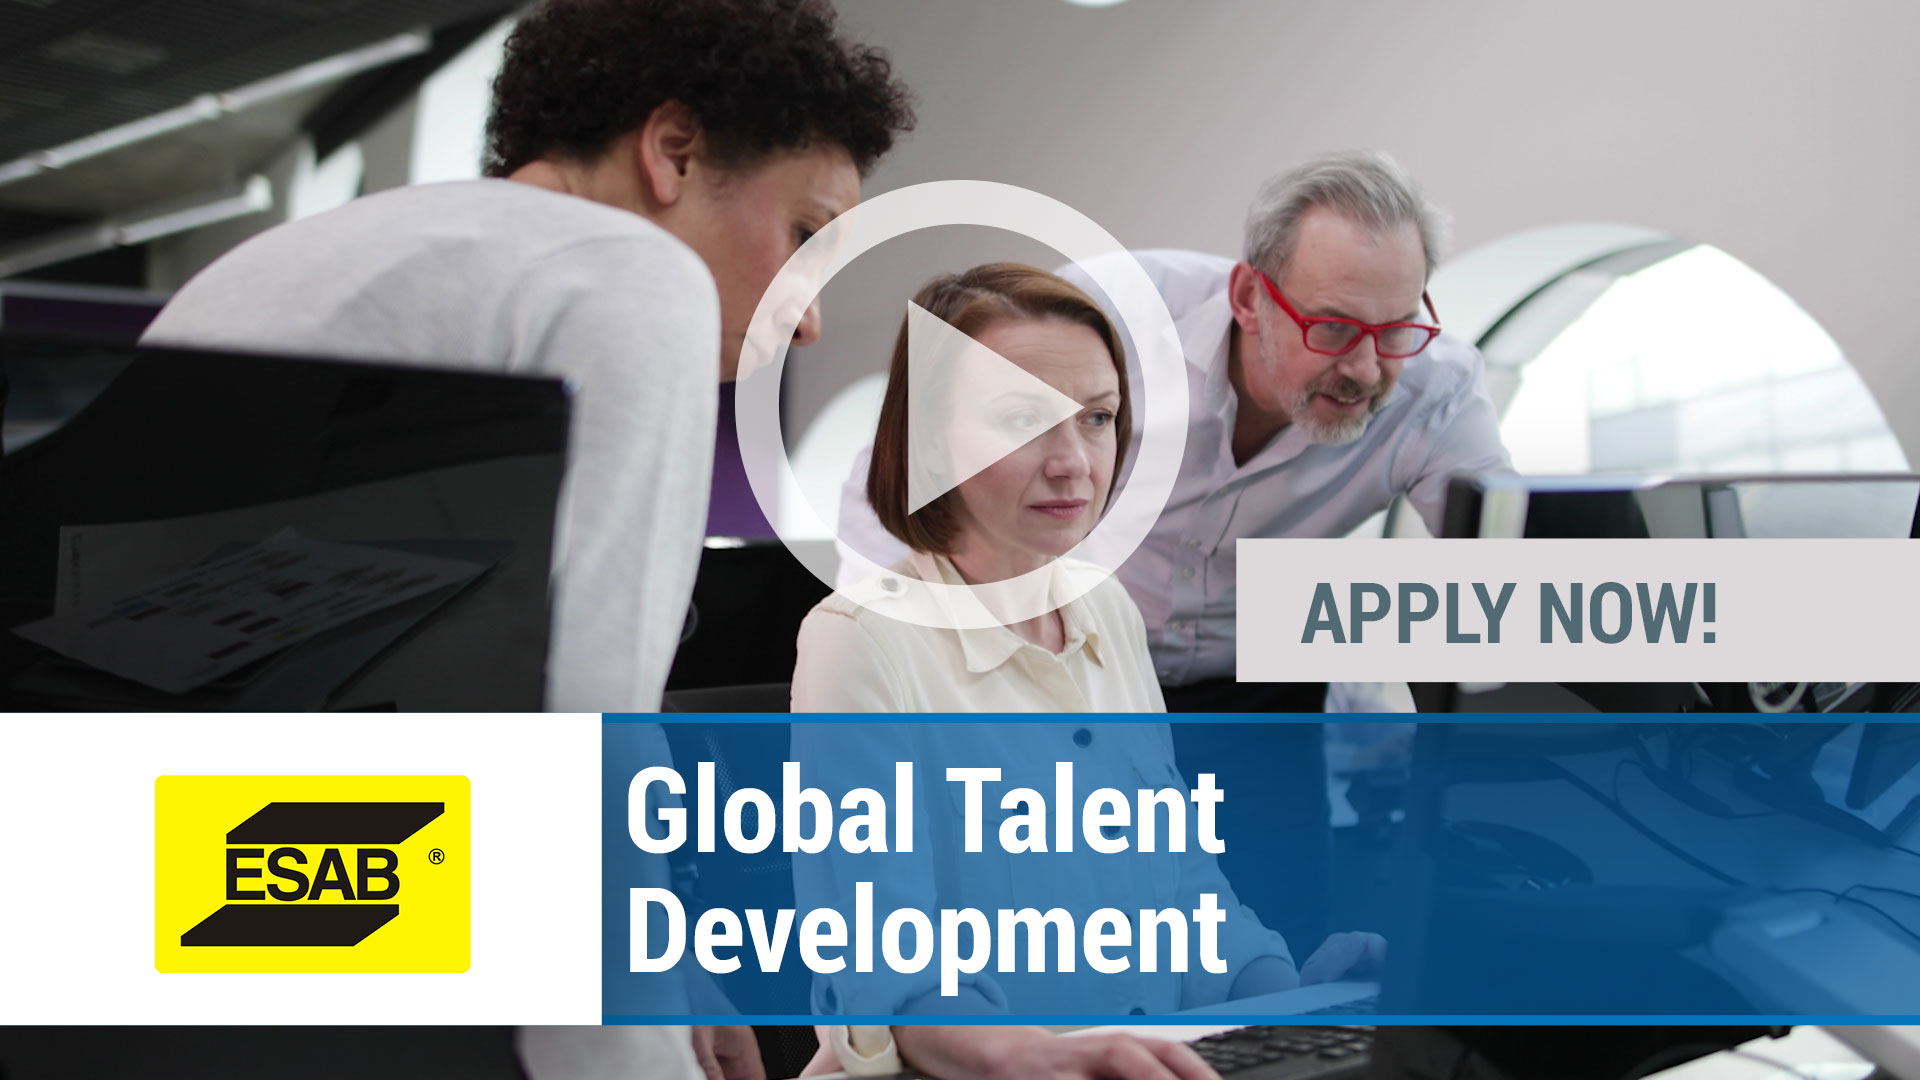 Watch our careers video for available job opening Director, Global Talent Development in Annapolis Junction, Maryland